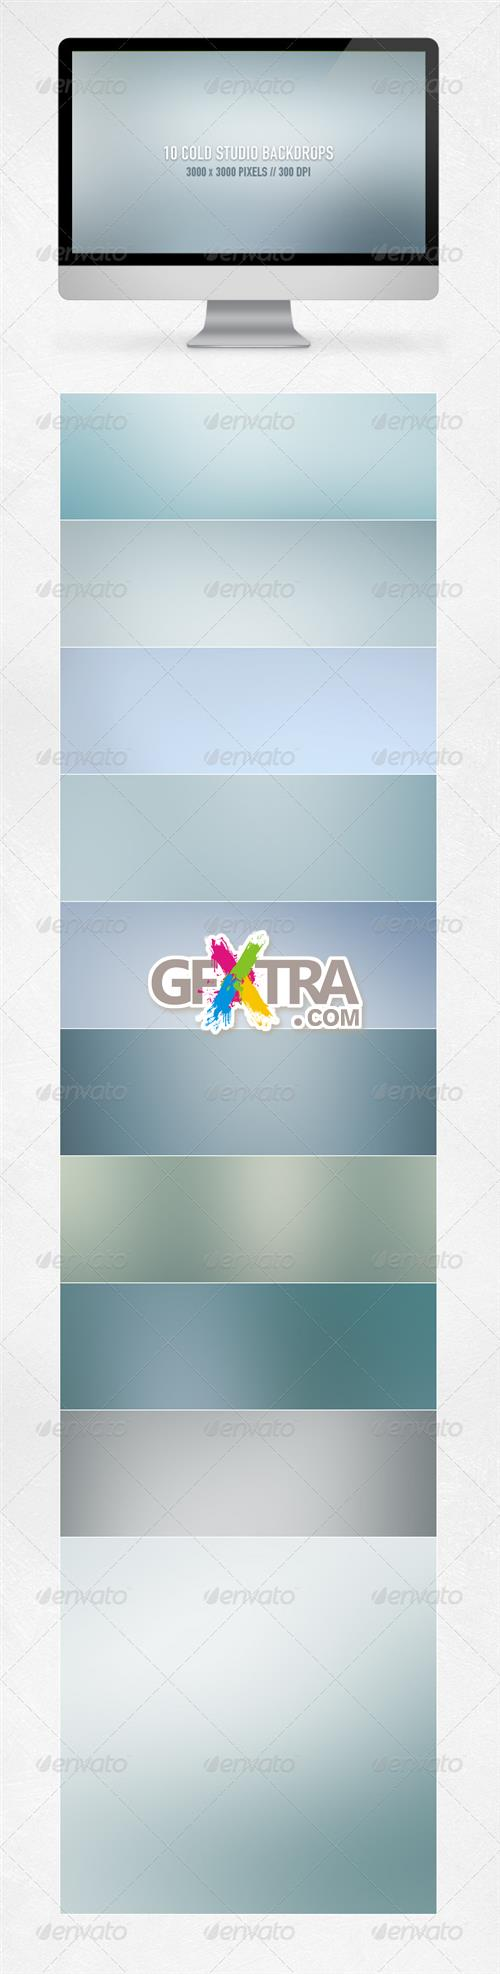 GraphicRiver - Cold Studio Backdrops